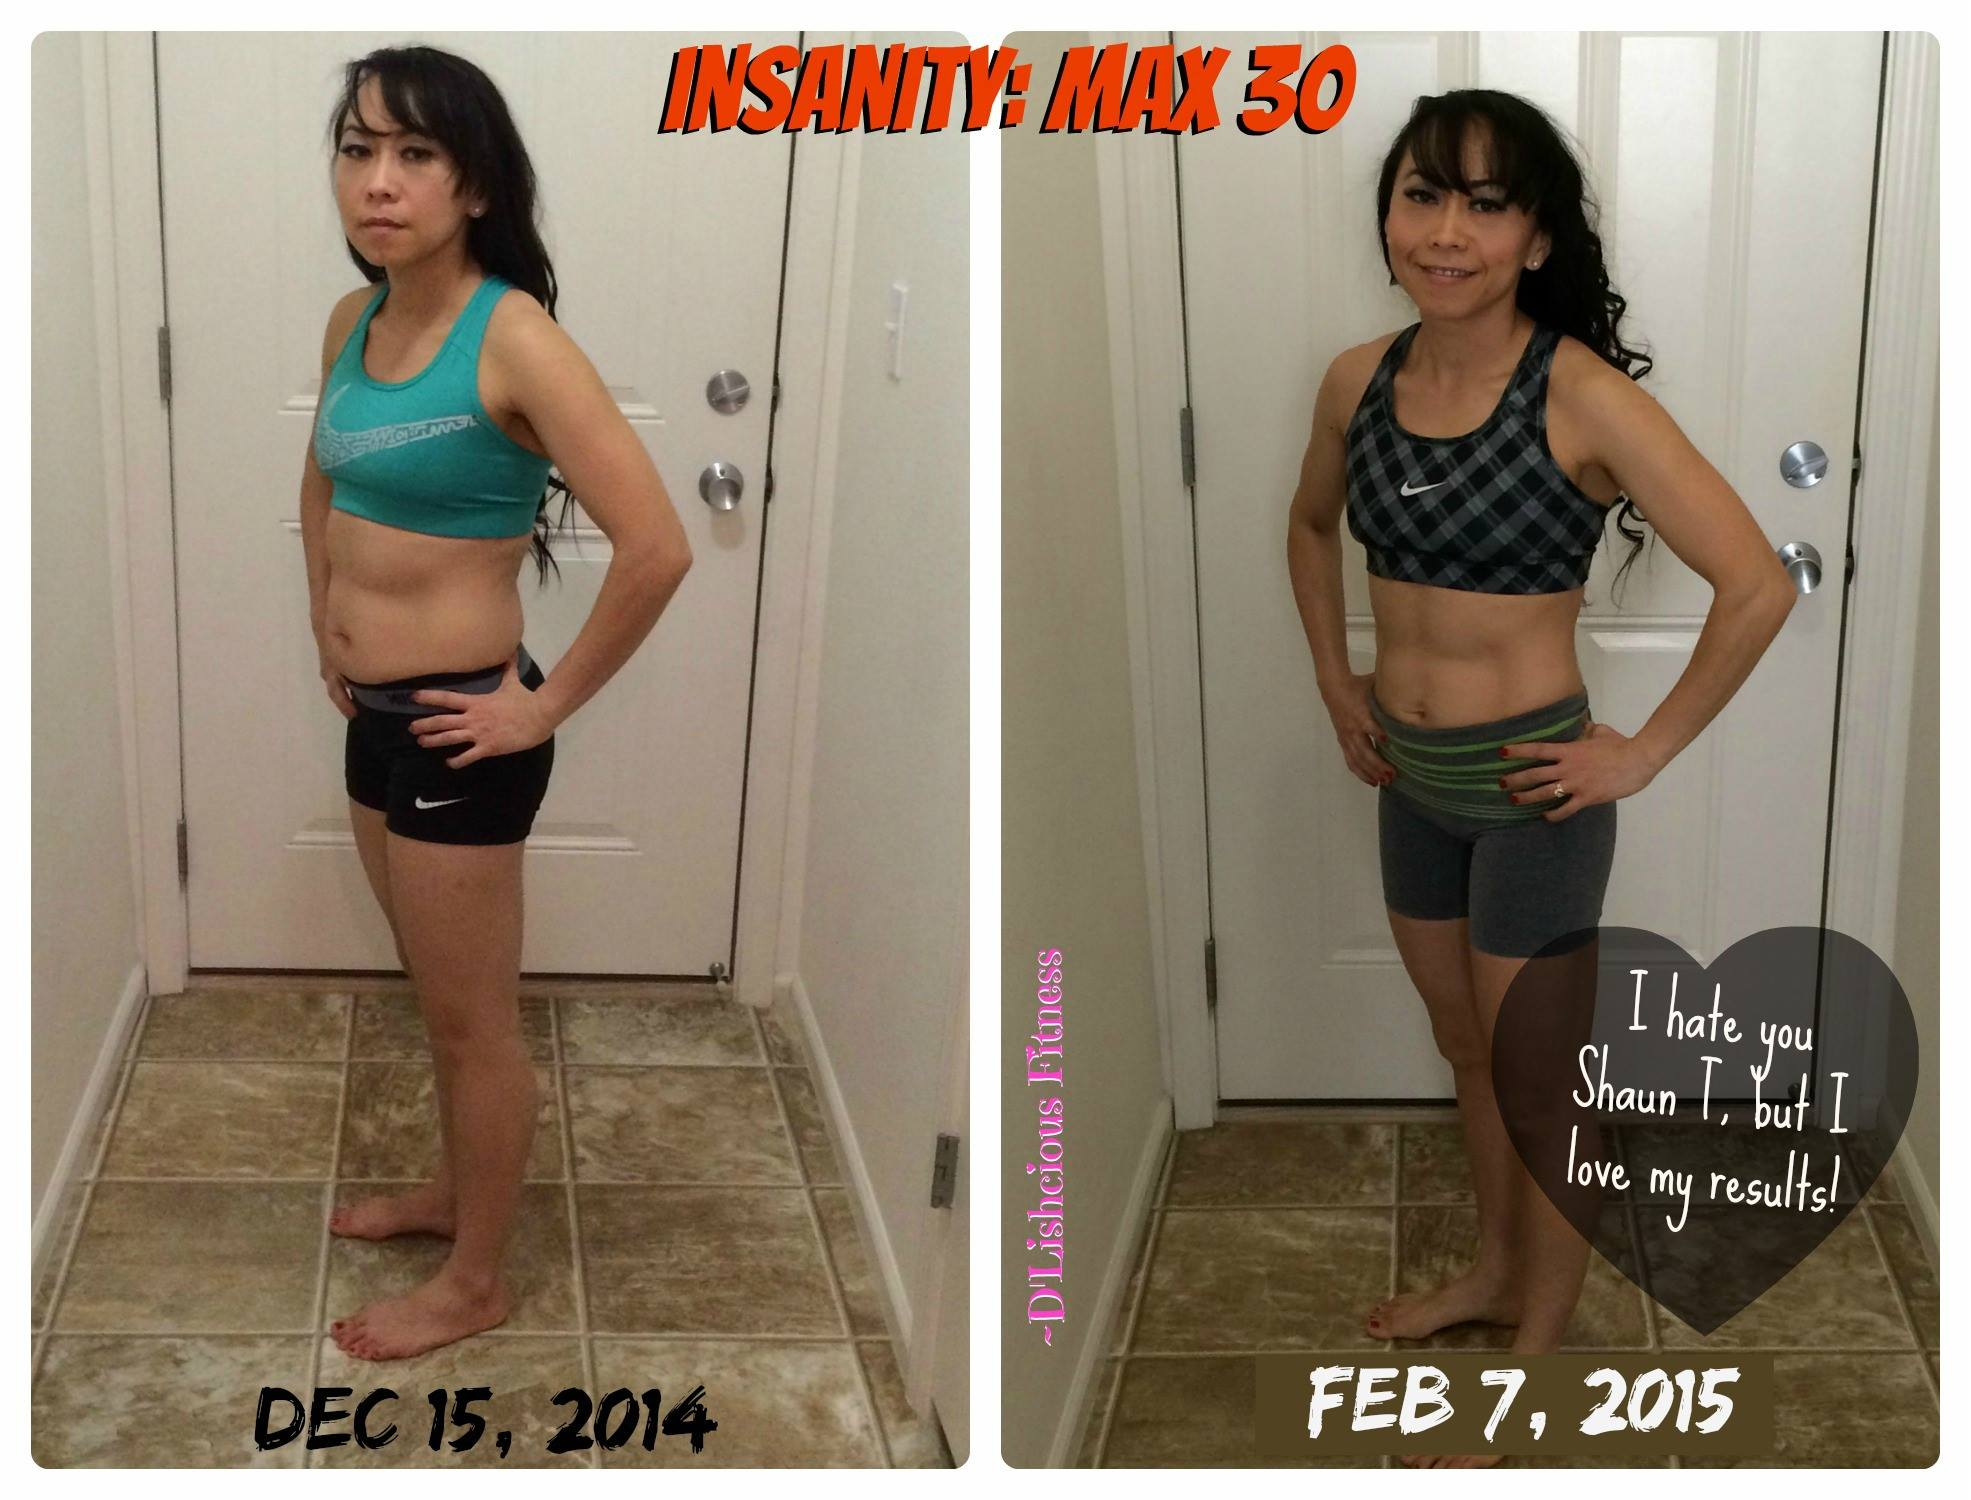 Female Insanity Max 30 Results